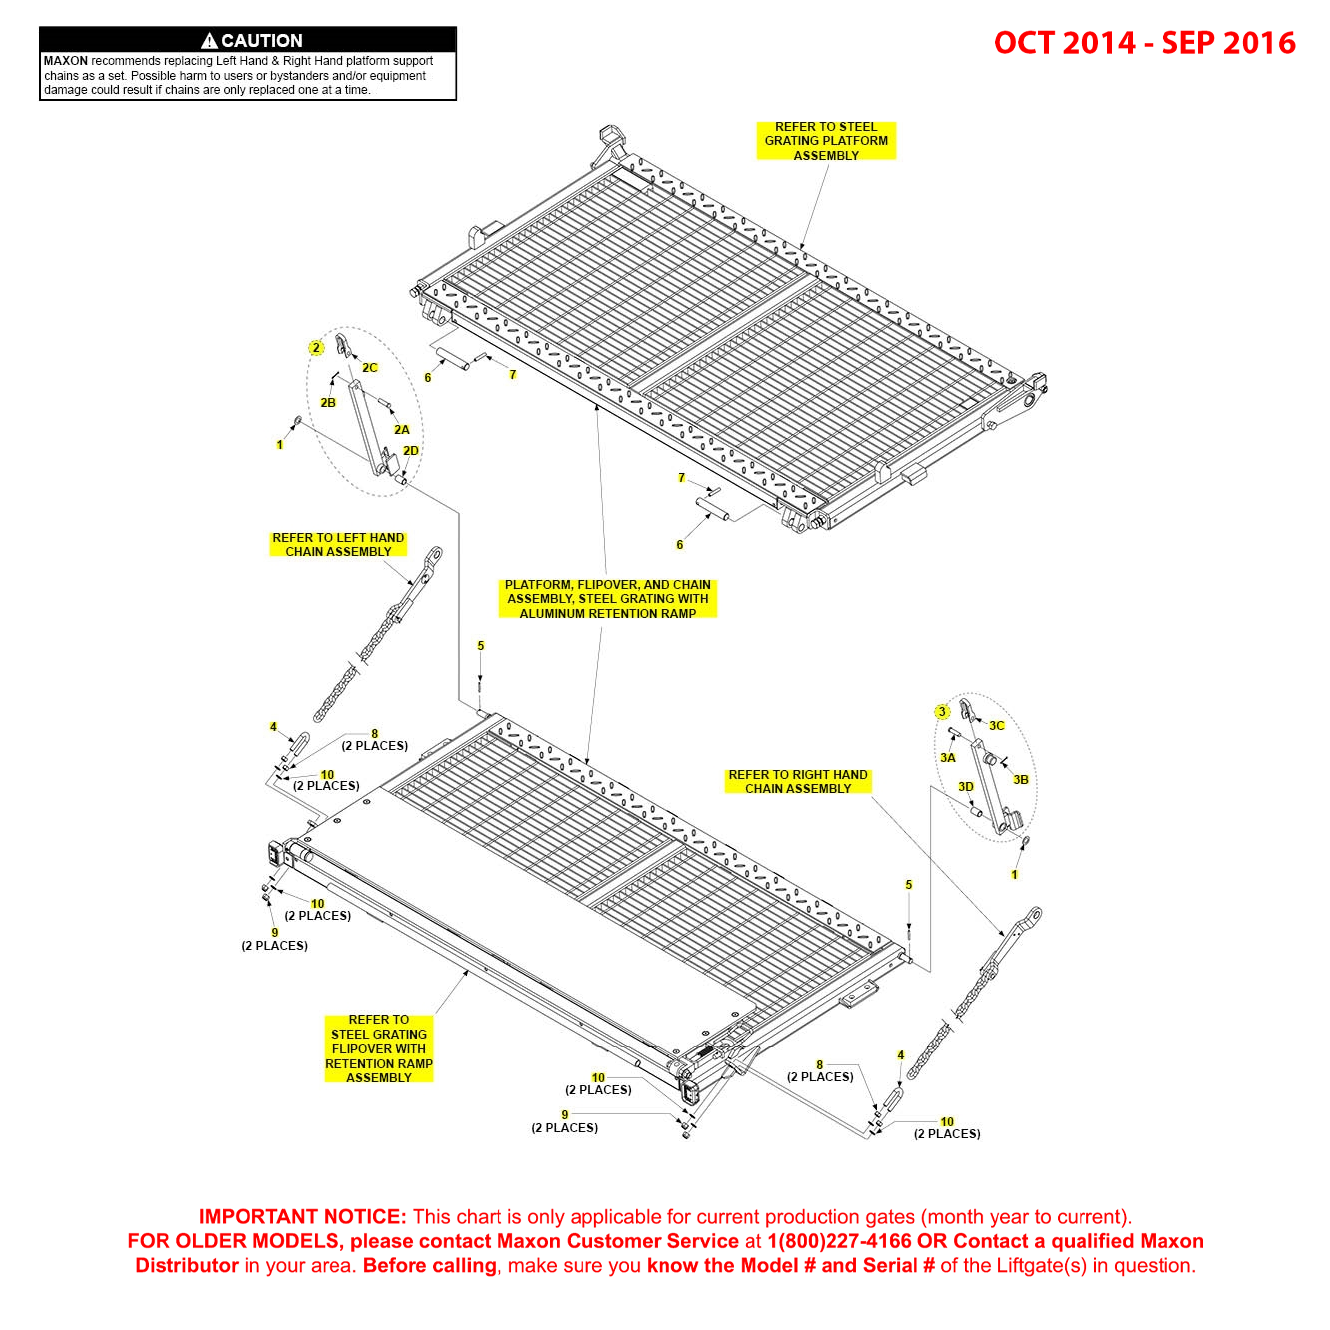 BMR (Oct 2014 - Sep 2016) Steel Grating Platform Flipover And Chain Assembly With Aluminum Retention Ramp